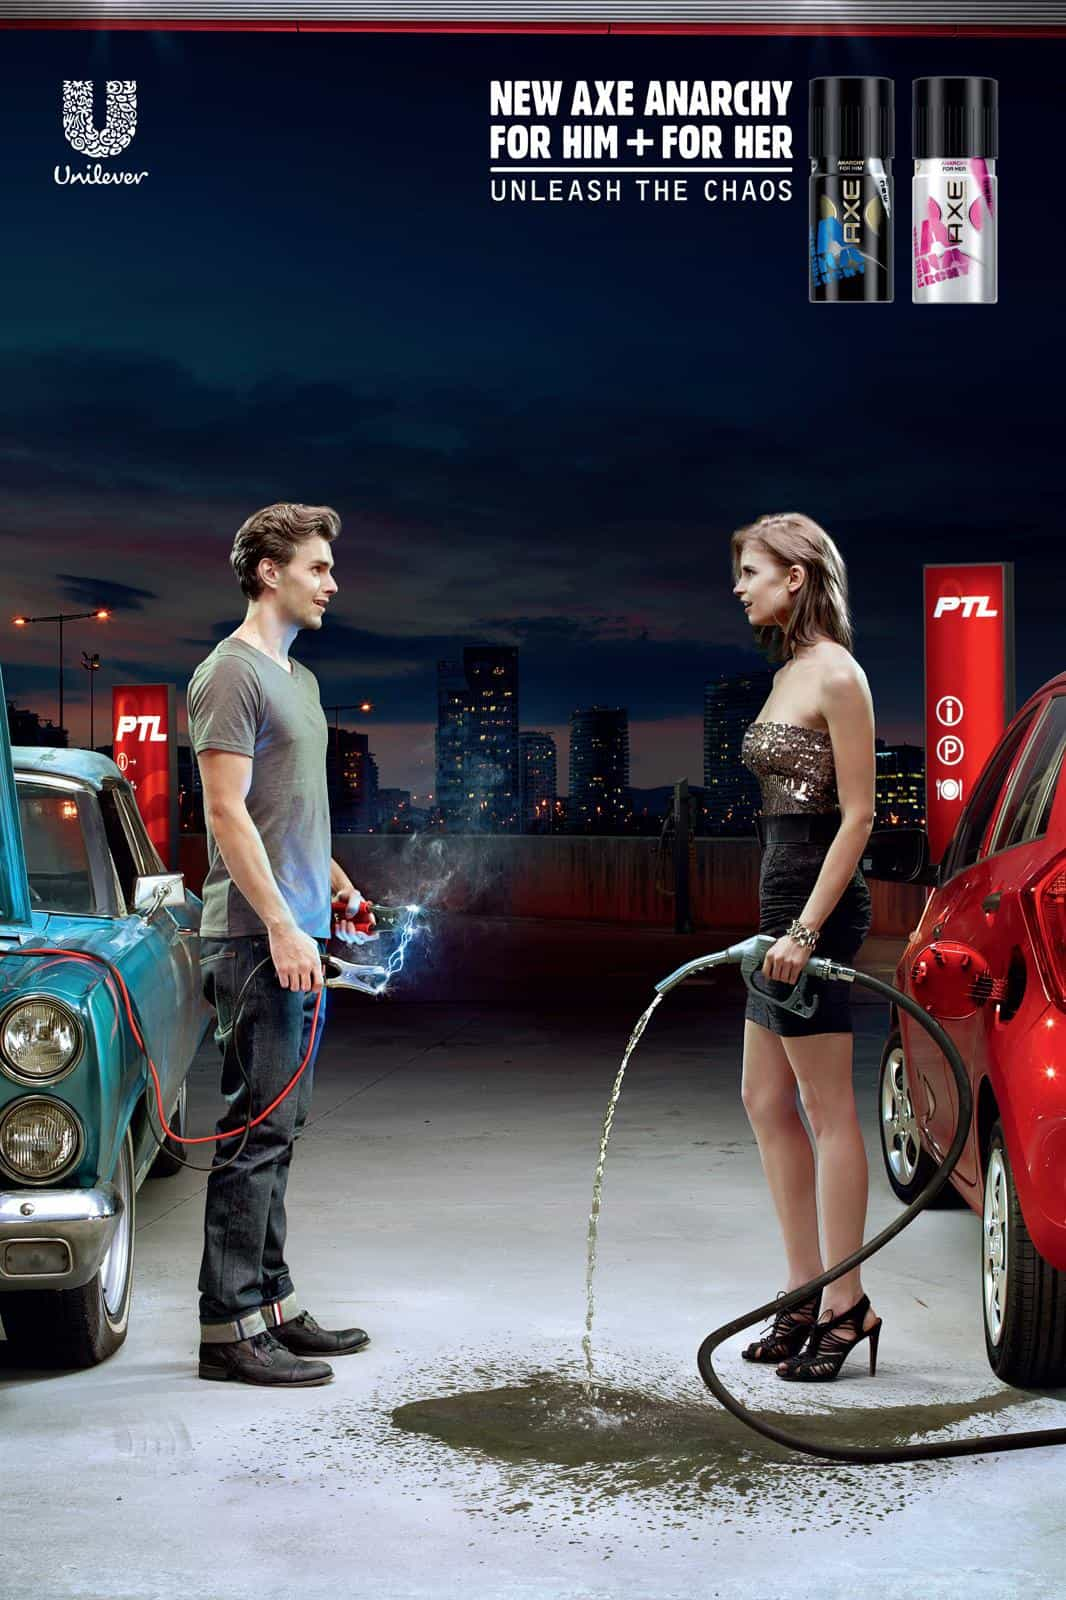 axe print advertisement example